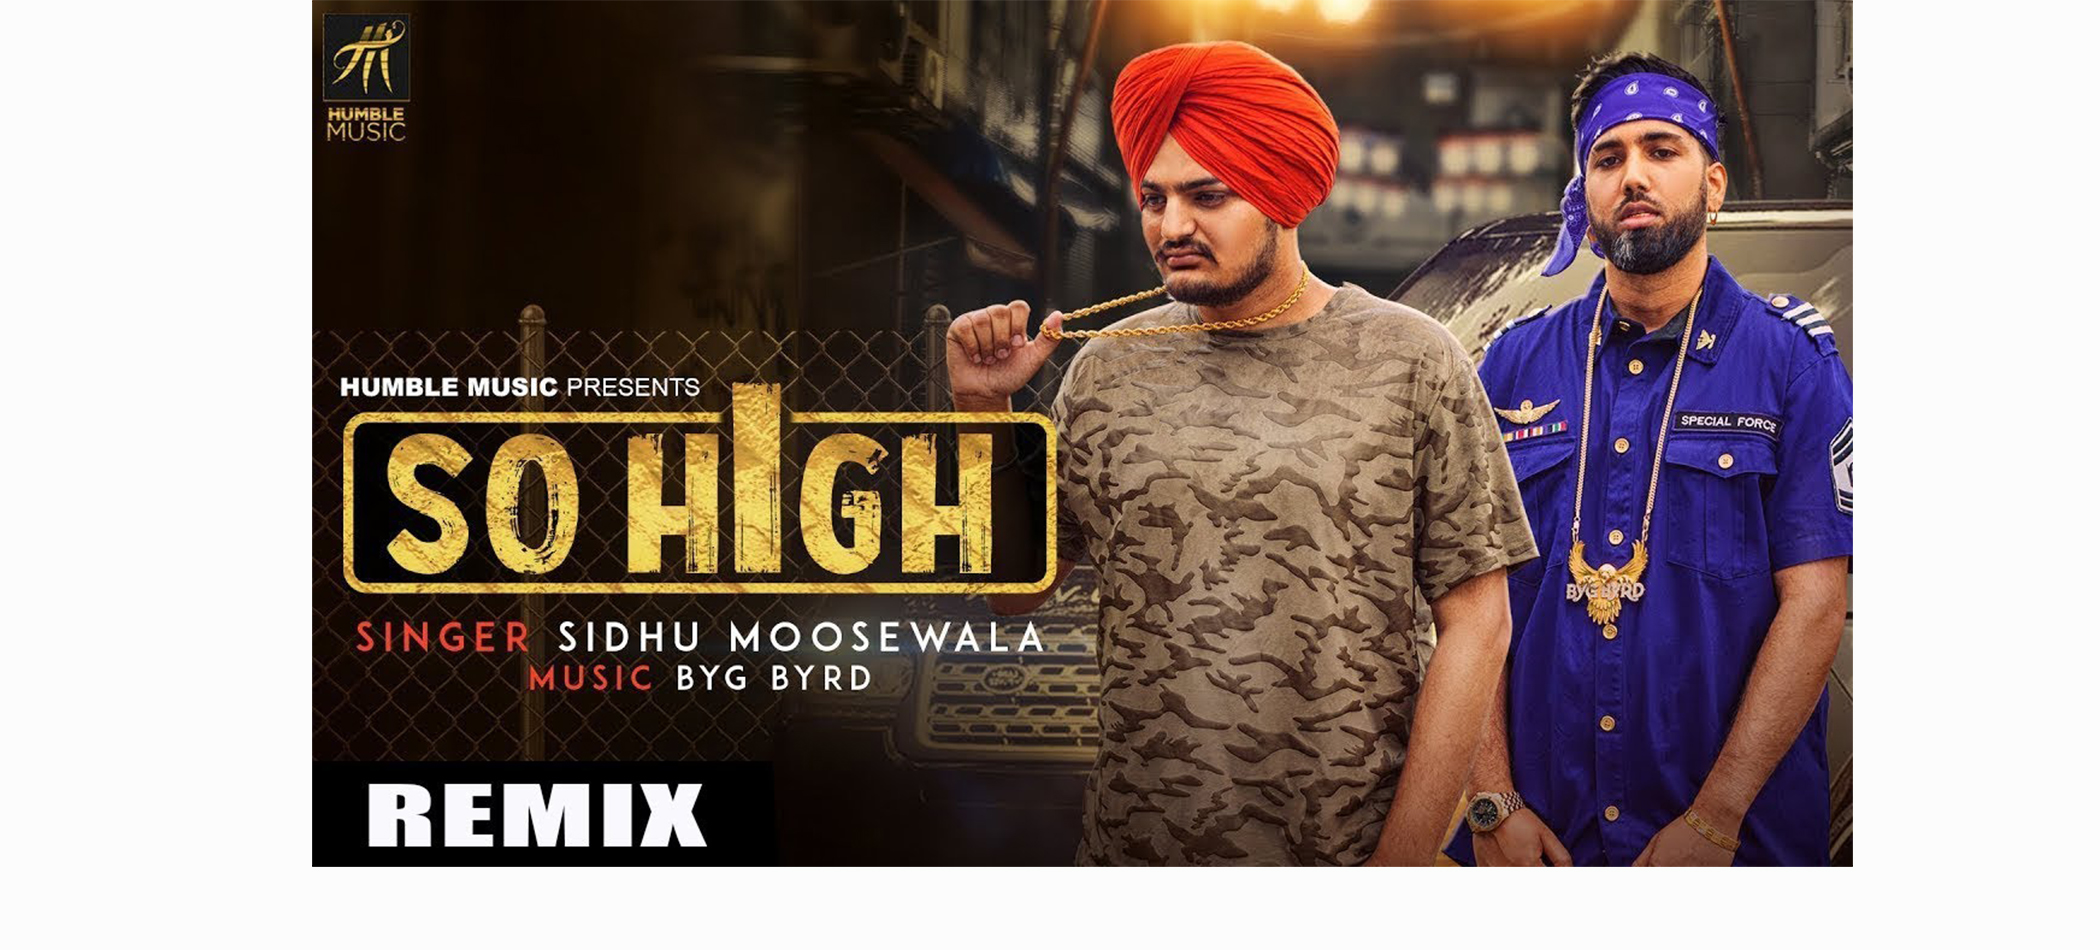 So High Sidhu Moosewala (DHOL REMIX) Download Rokitbeats